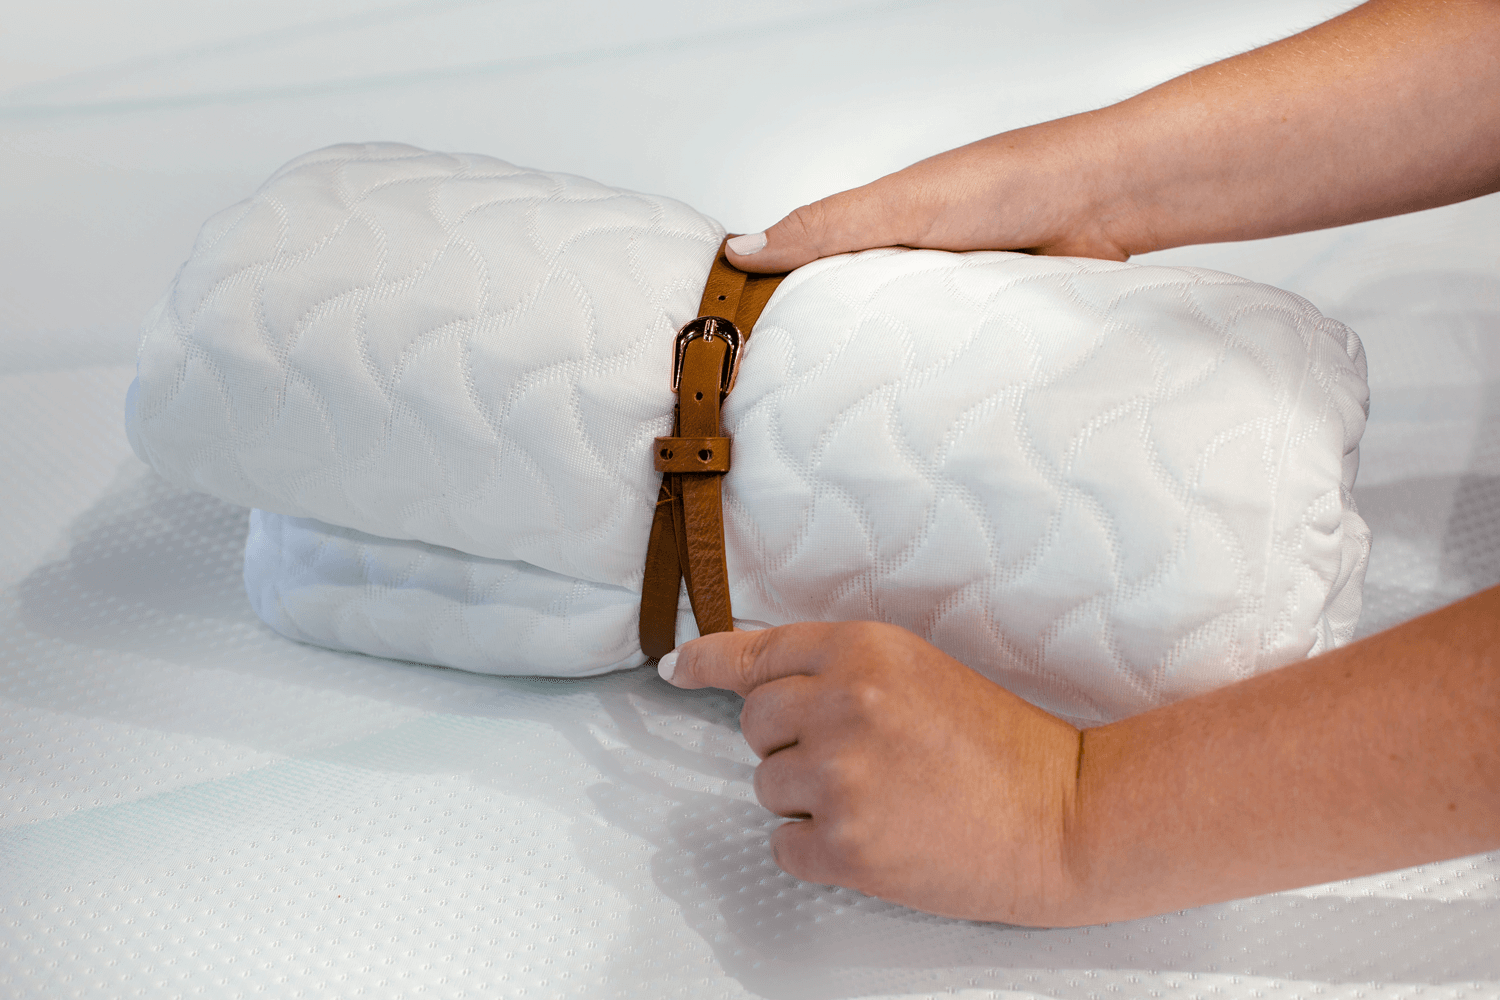 A rolled Tempur-Cloud pillow being secured with a belt